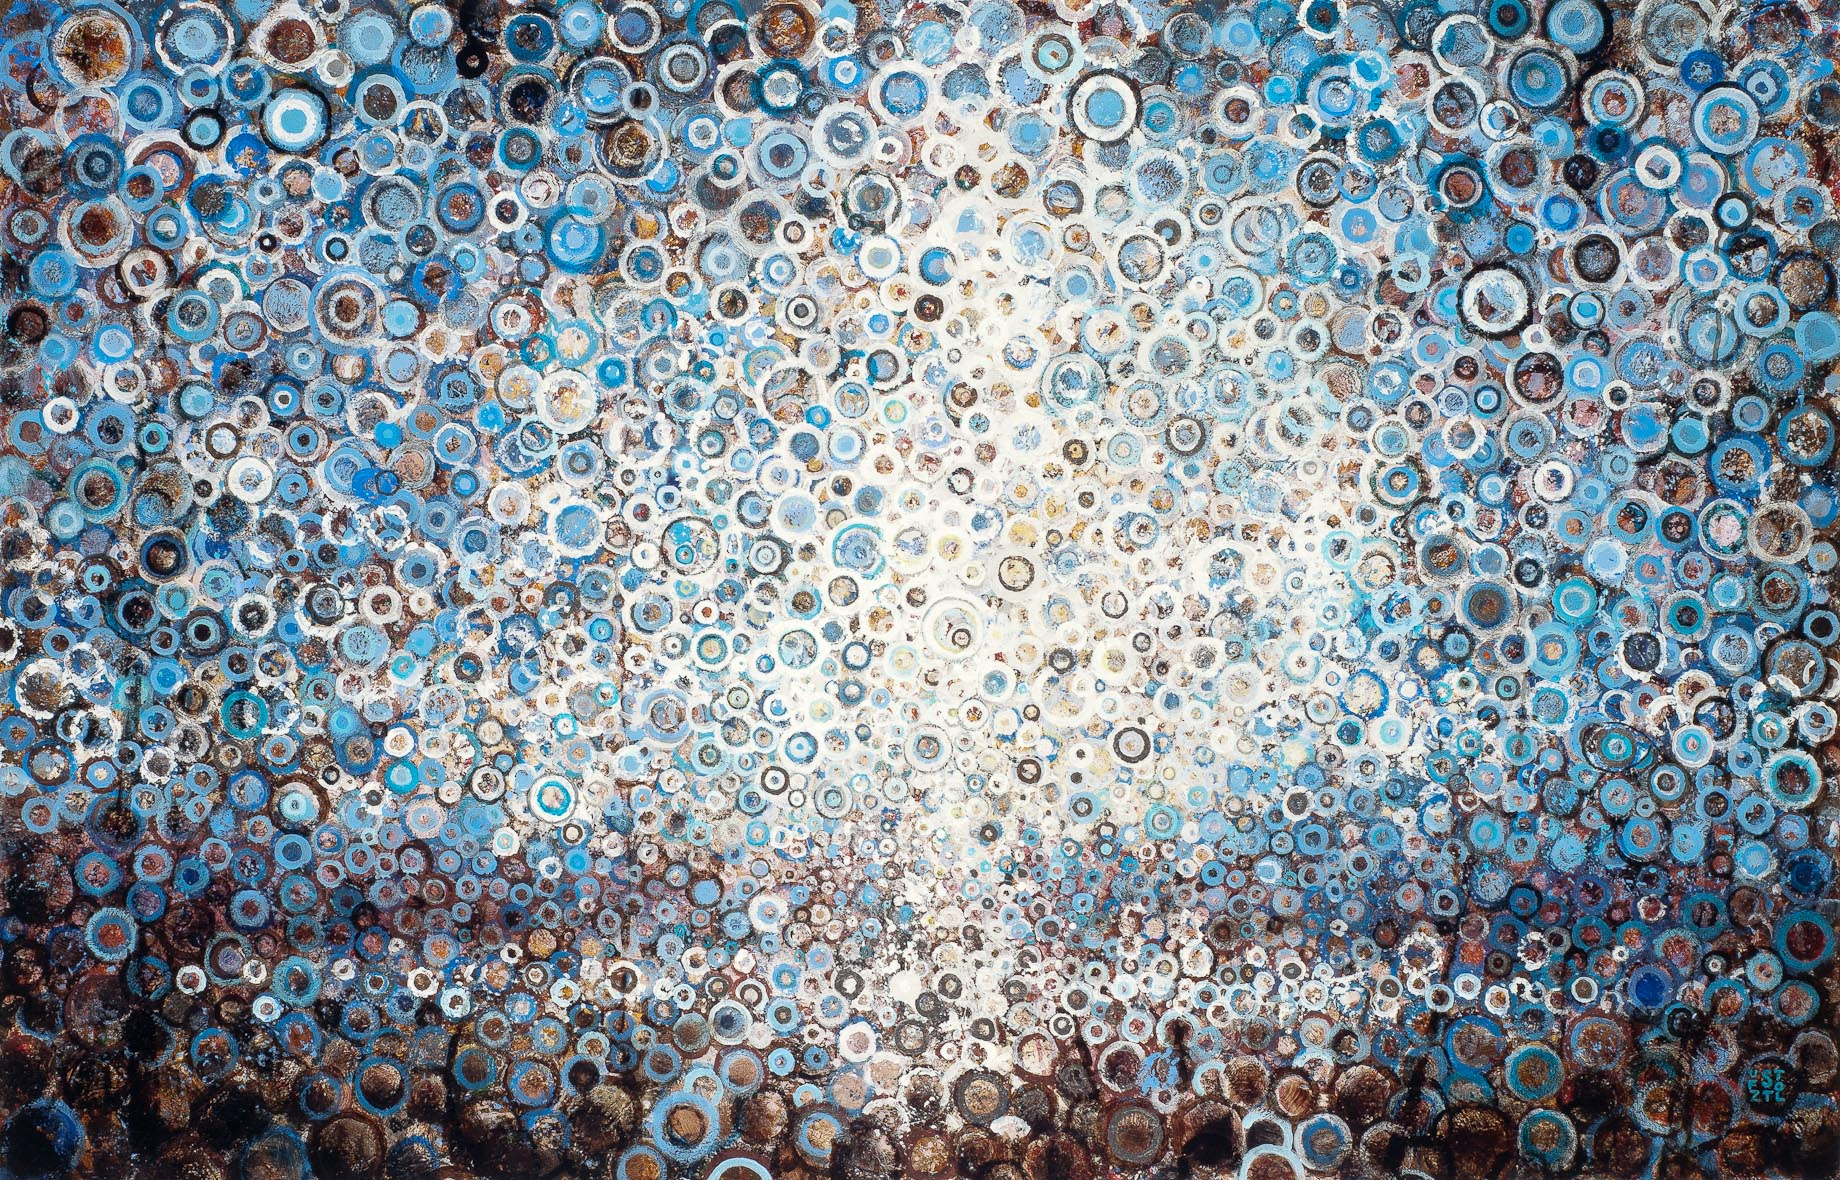 A field of blue, white, and brown circles painting create an abstract landscape in the painting 'Rise' by artist Randall Stoltzfus